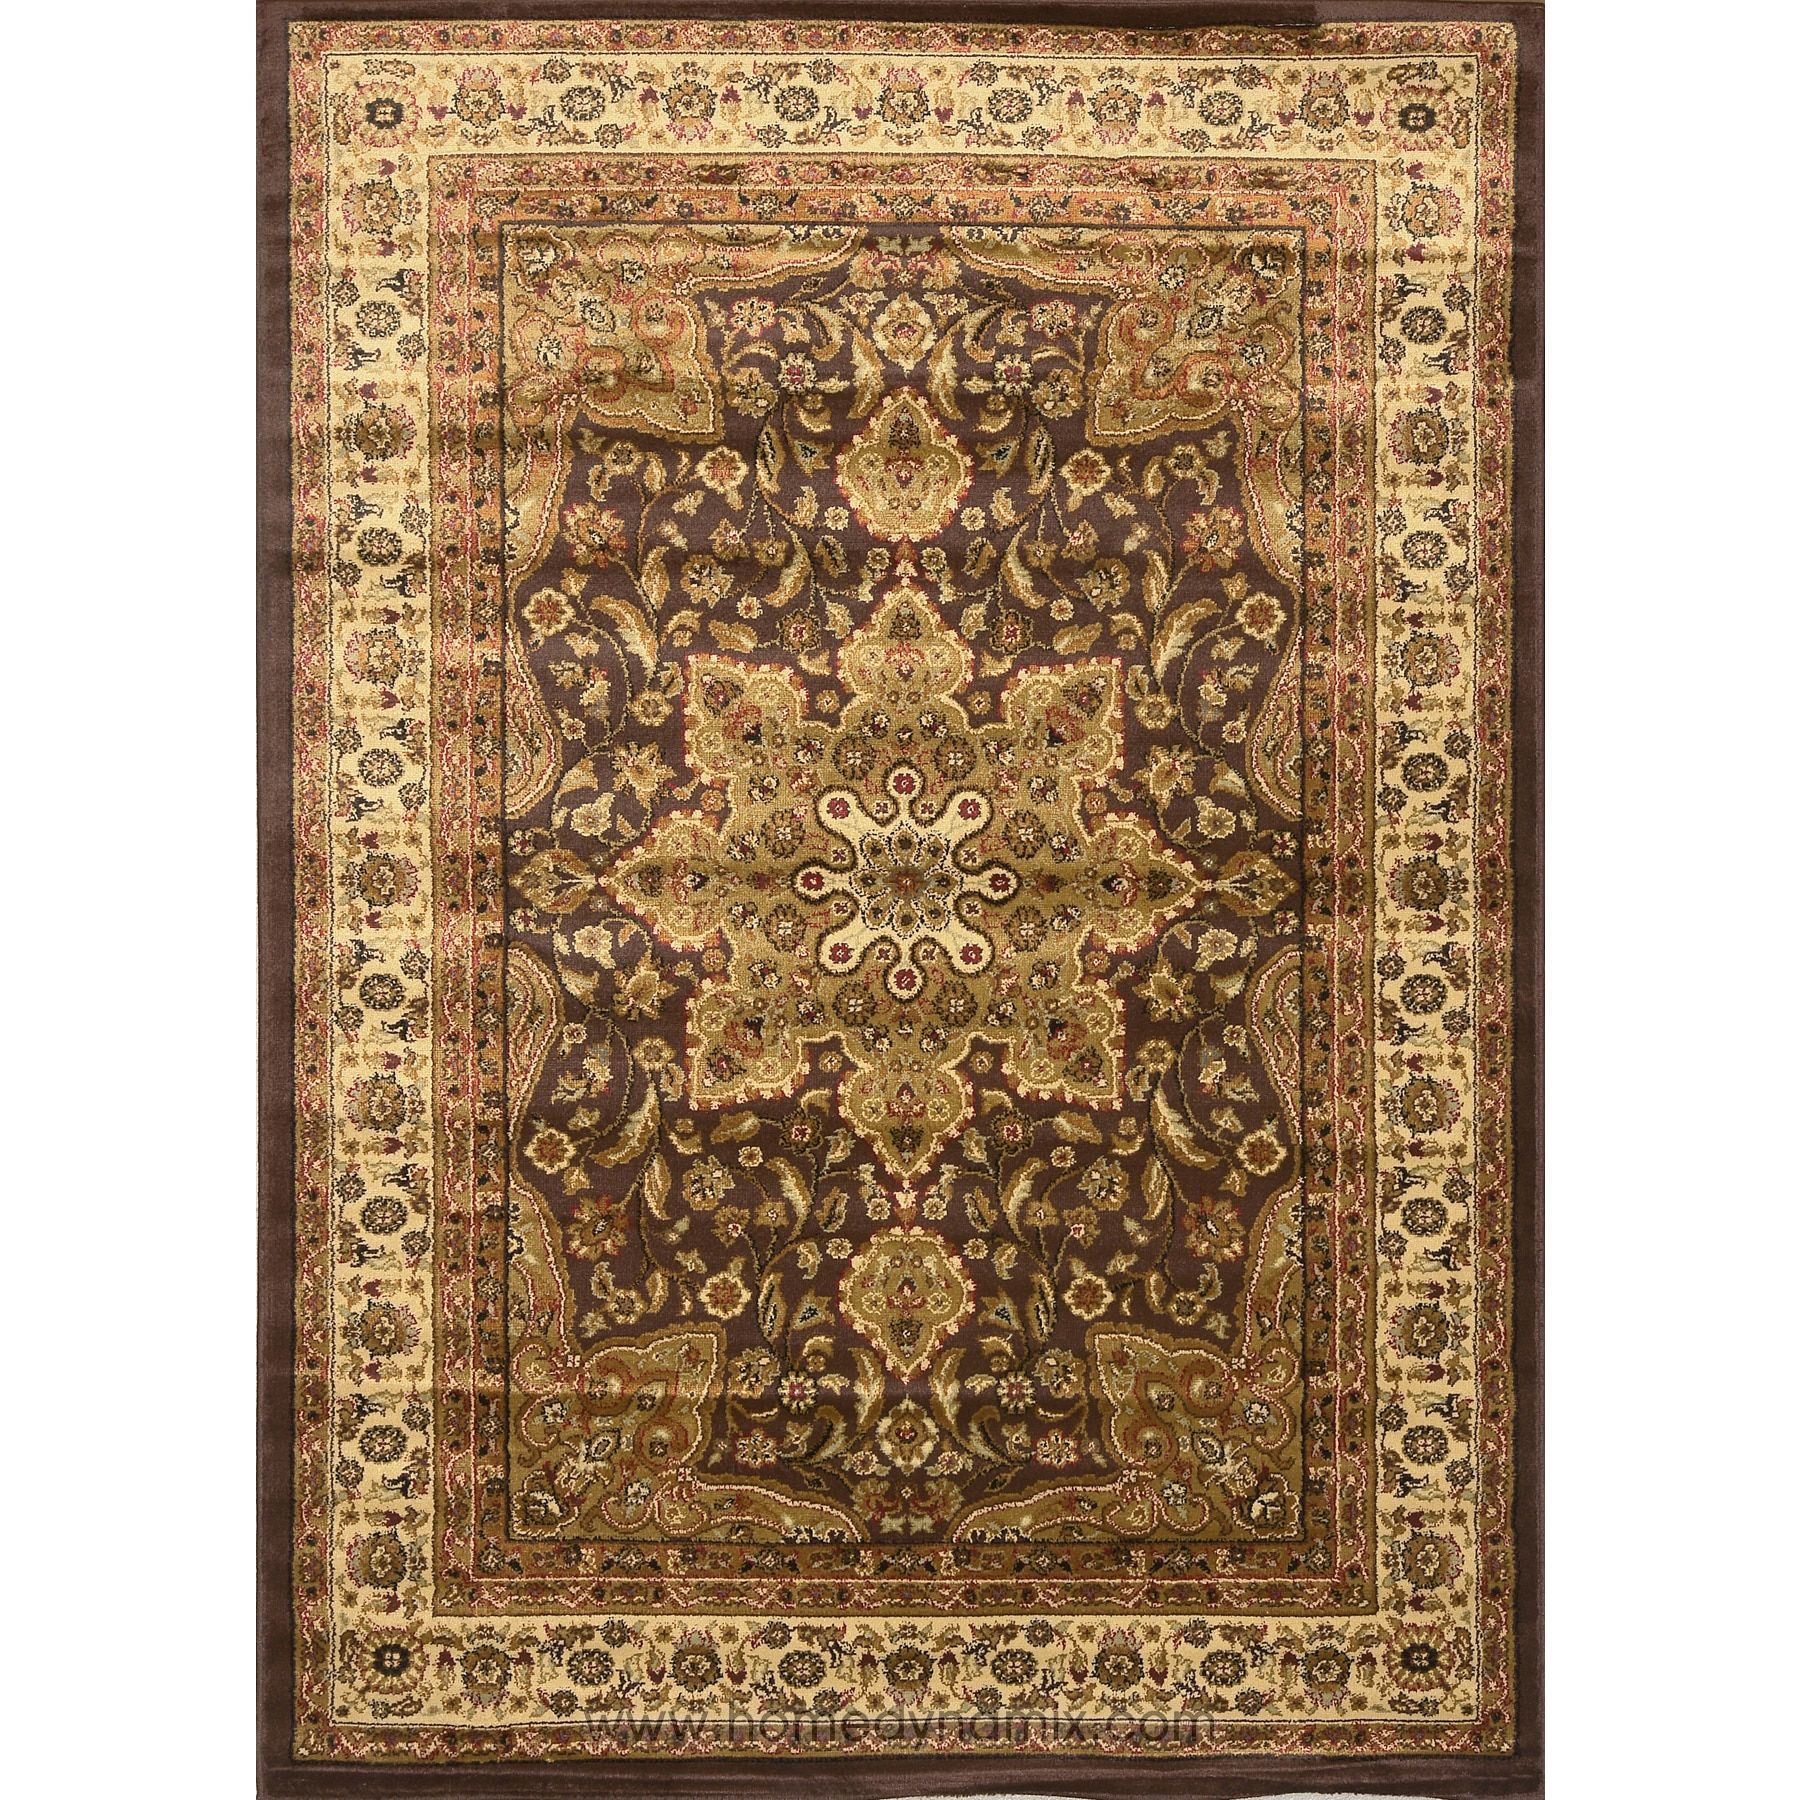 Home Dynamix Royalty Collection 8083 500 Brown Area Rug 1 7 6 X 2 5 Traditional 19 X31 Ter Beige Size 3 Plastic